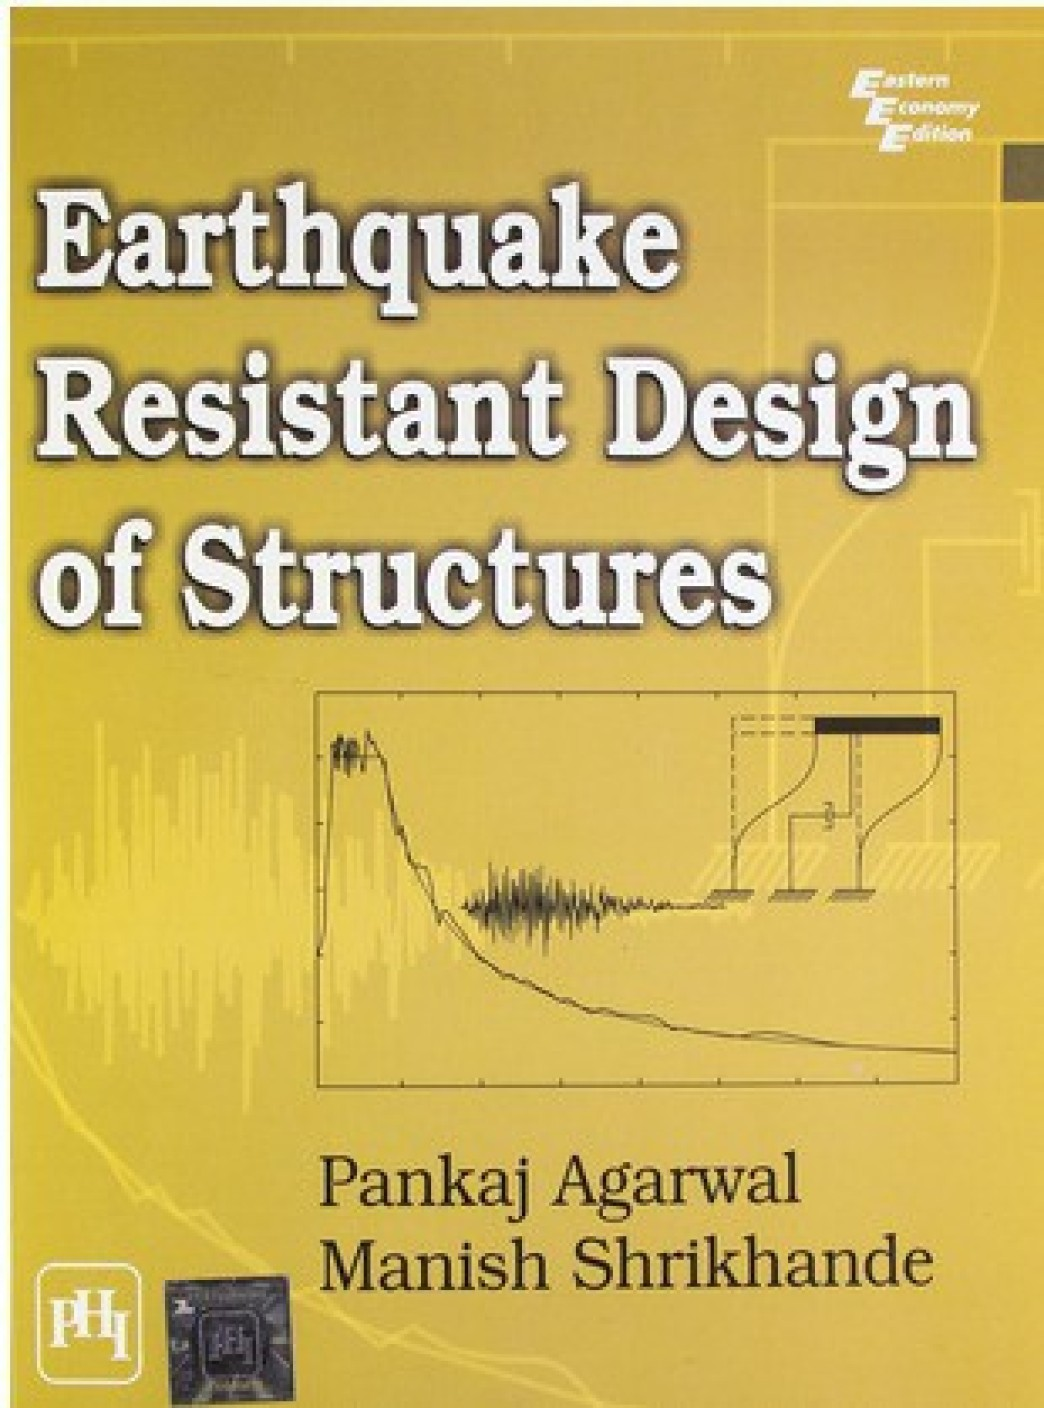 Structural Analysis and Design Books